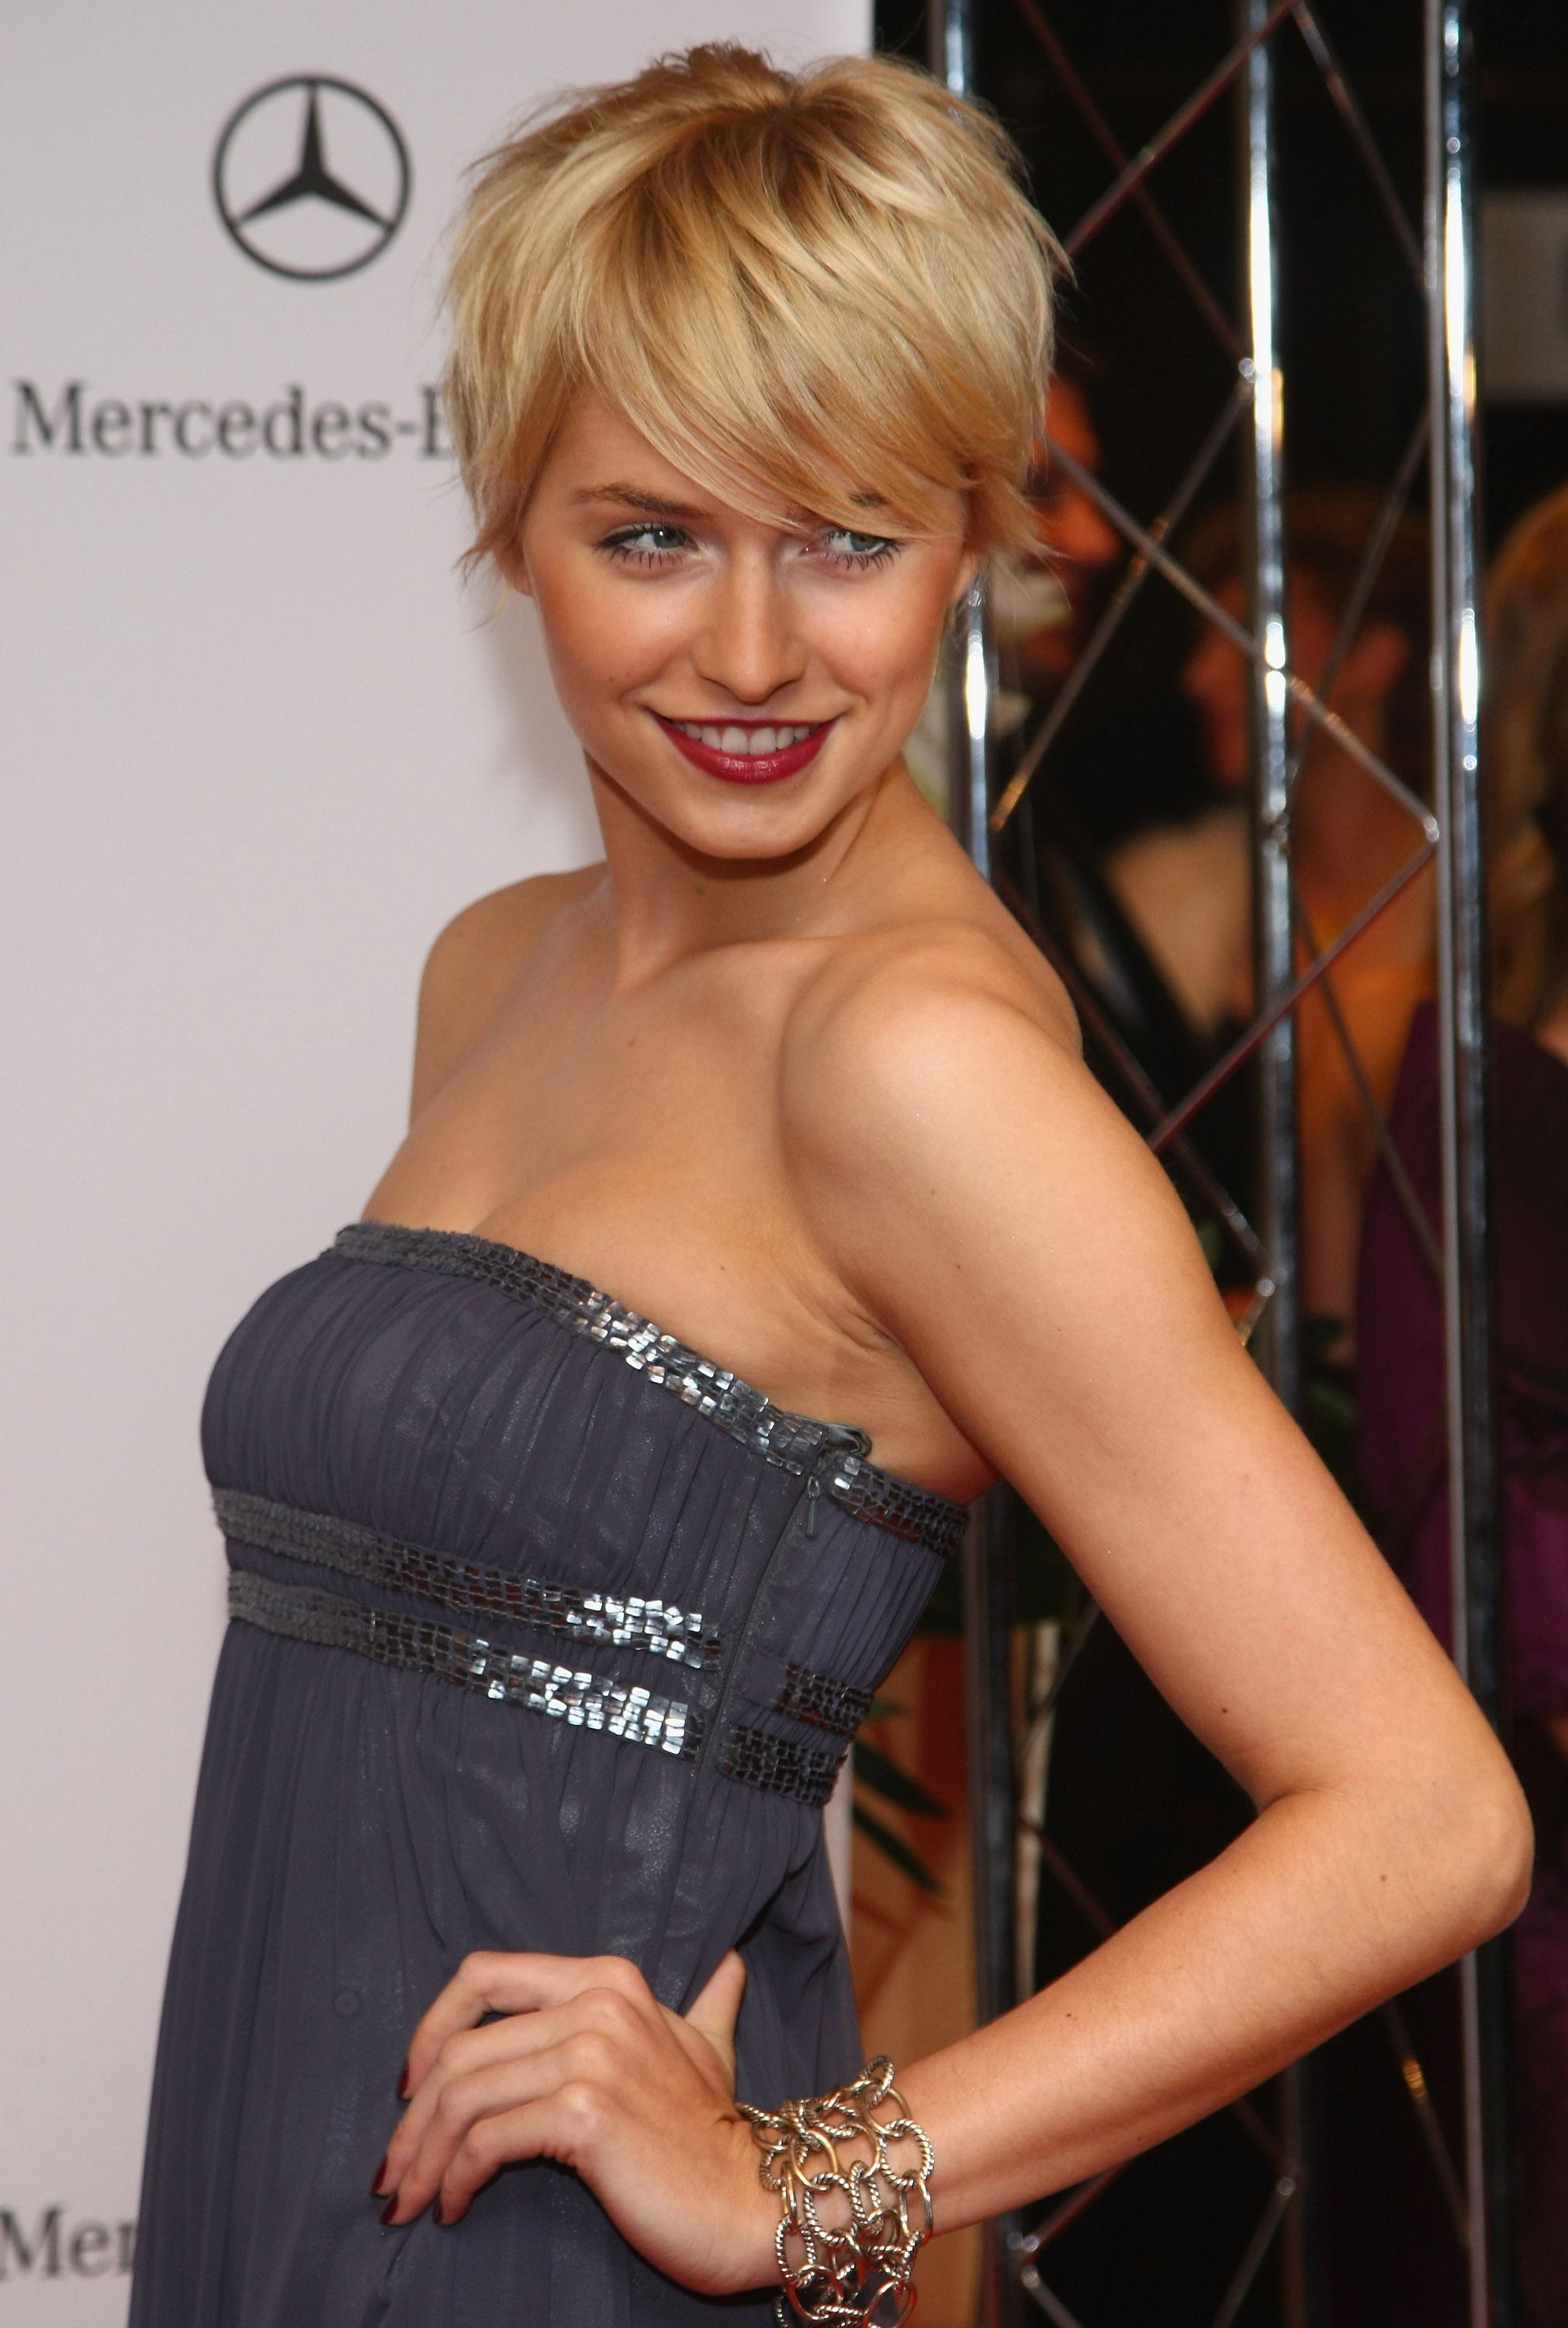 Short hair wfringe bangs perfect crop haircut and golden blonde